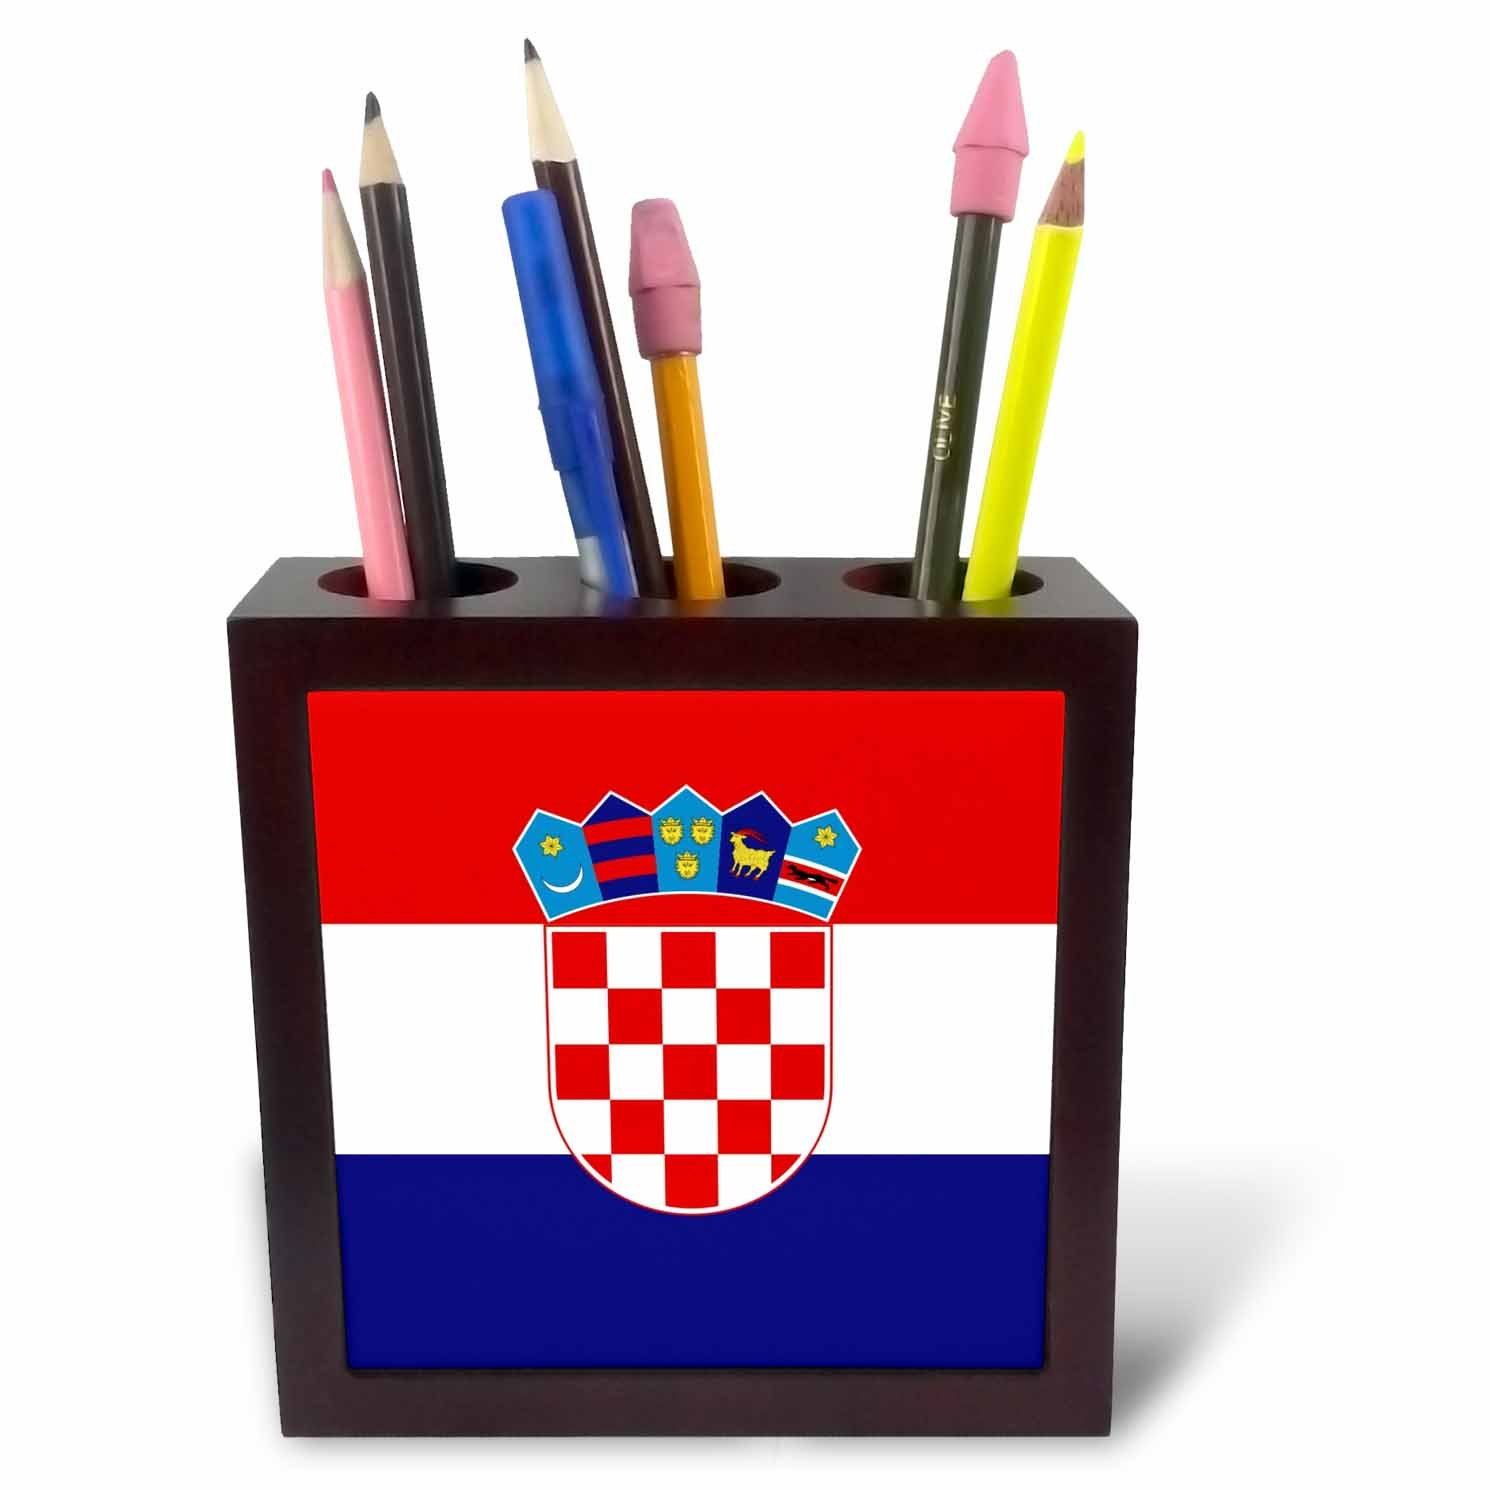 3dRose ph_158301_1 Flag of Croatia Croat Red White Blue Stripes Croatian Coat of Arms Shield Europe Country World Tile Pen Holder, 5-Inch